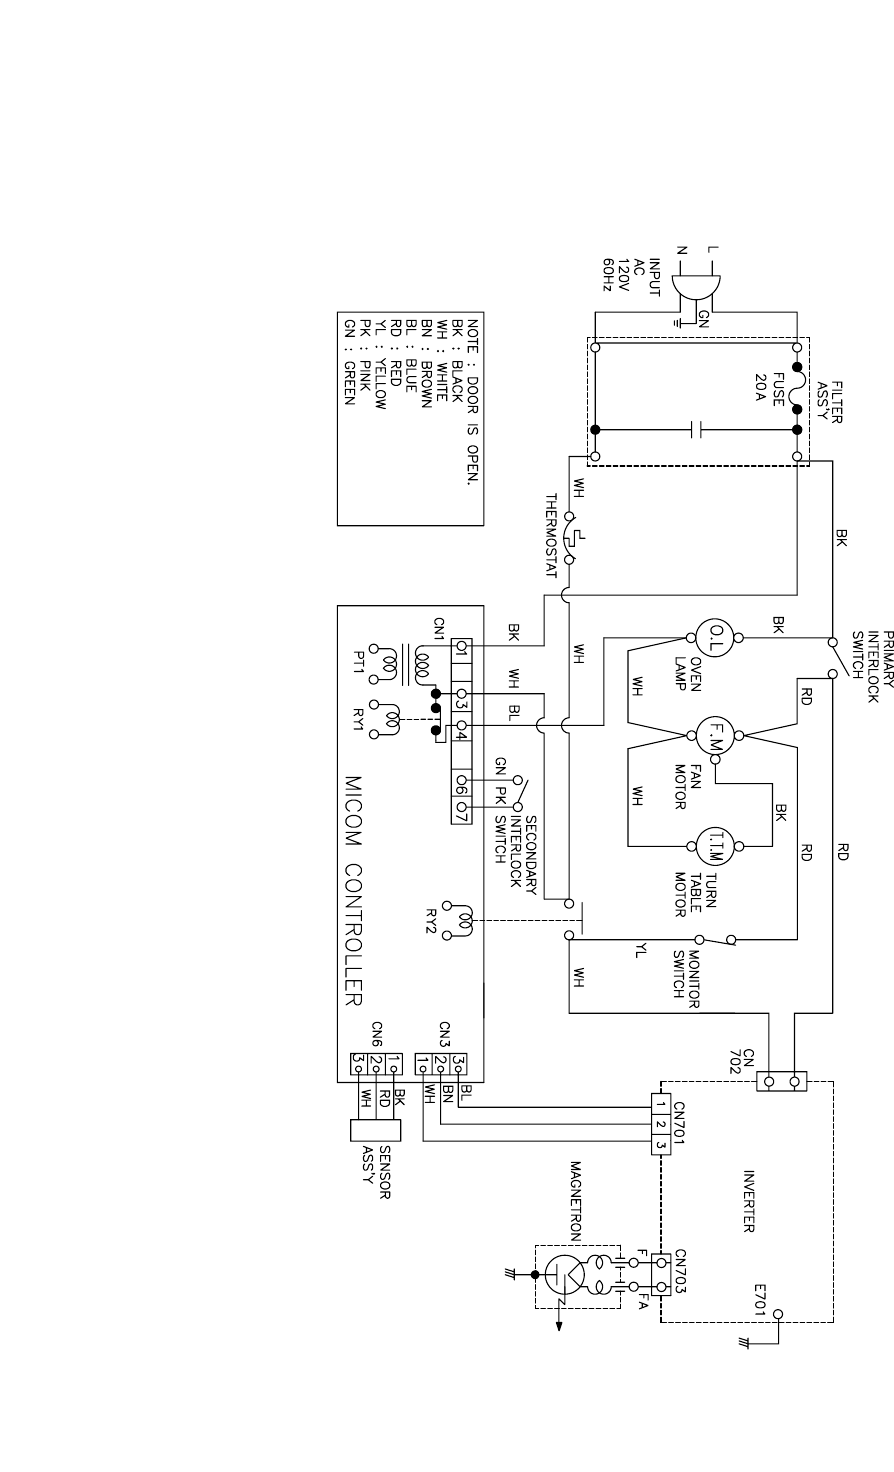 ... wiring diagram for ge emaker microwave oven wiki share b3a5b321 52d8  4df2 ae5a 561ecae0801c bg8 wiring ...